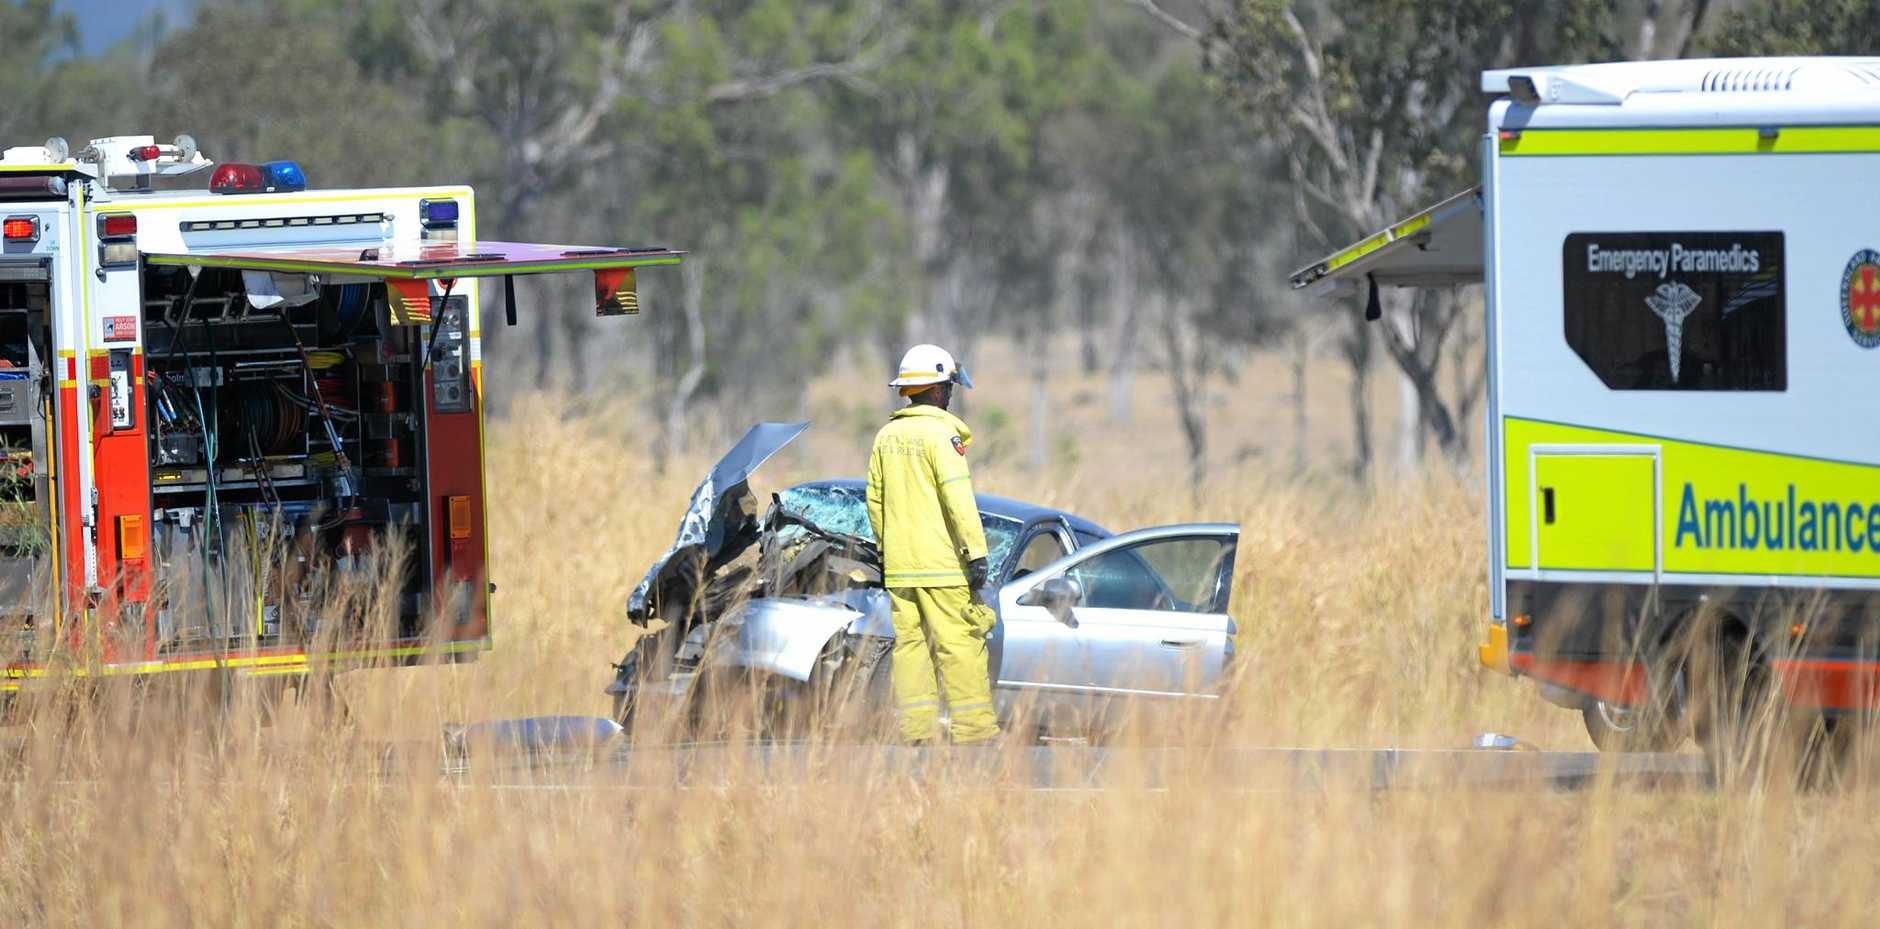 Emergency services at the scene of an accident south of Rockhampton on the Bruce Highway.